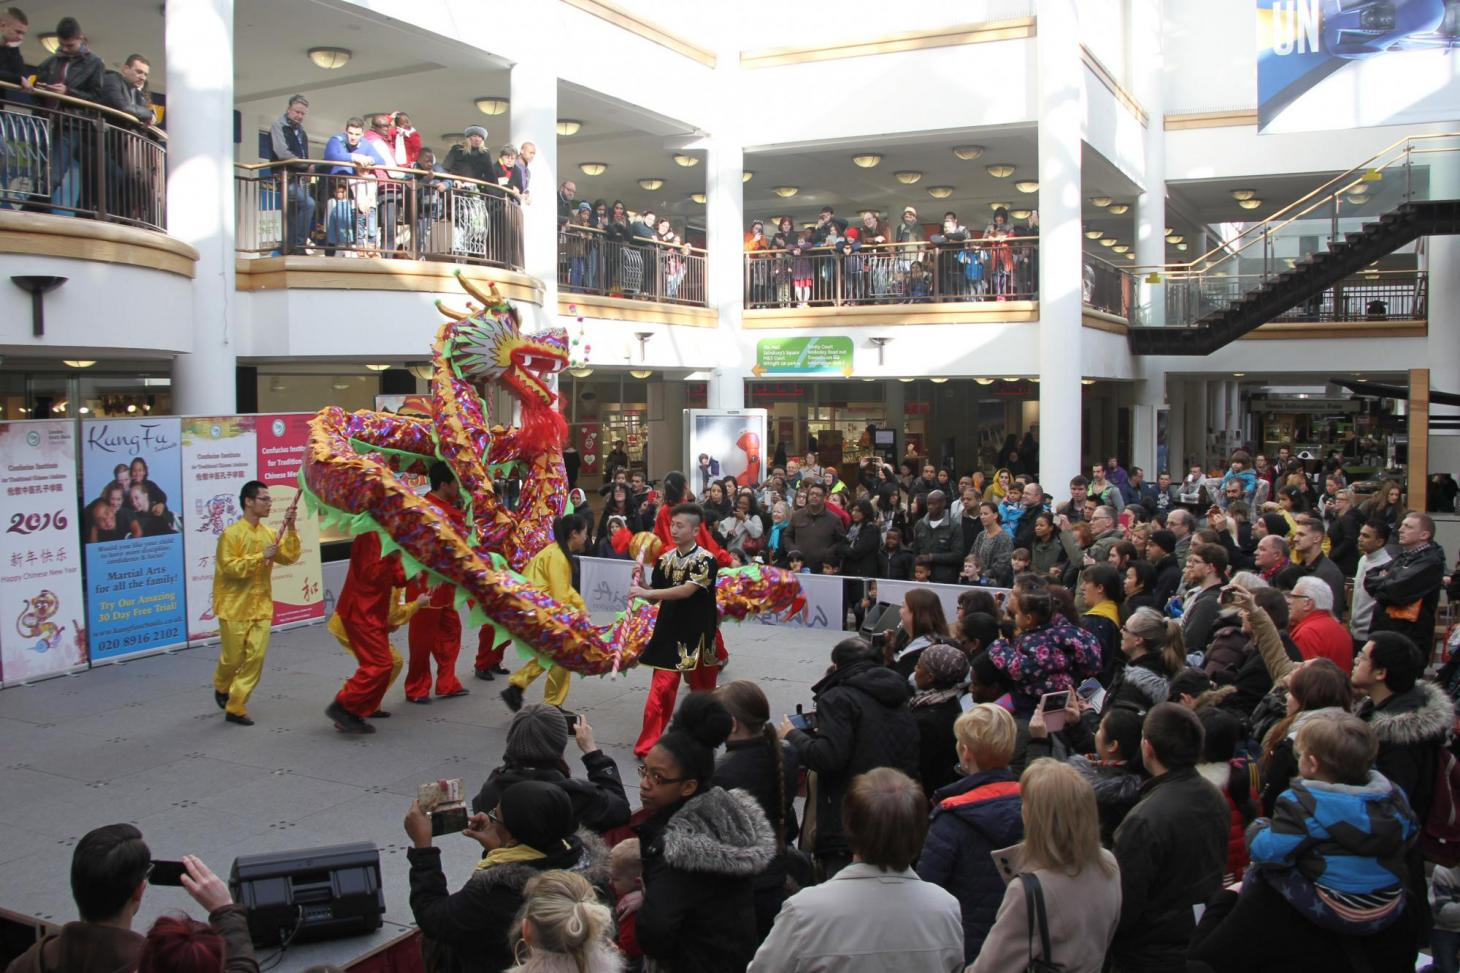 The dragon swooped onto the stage to open the performance